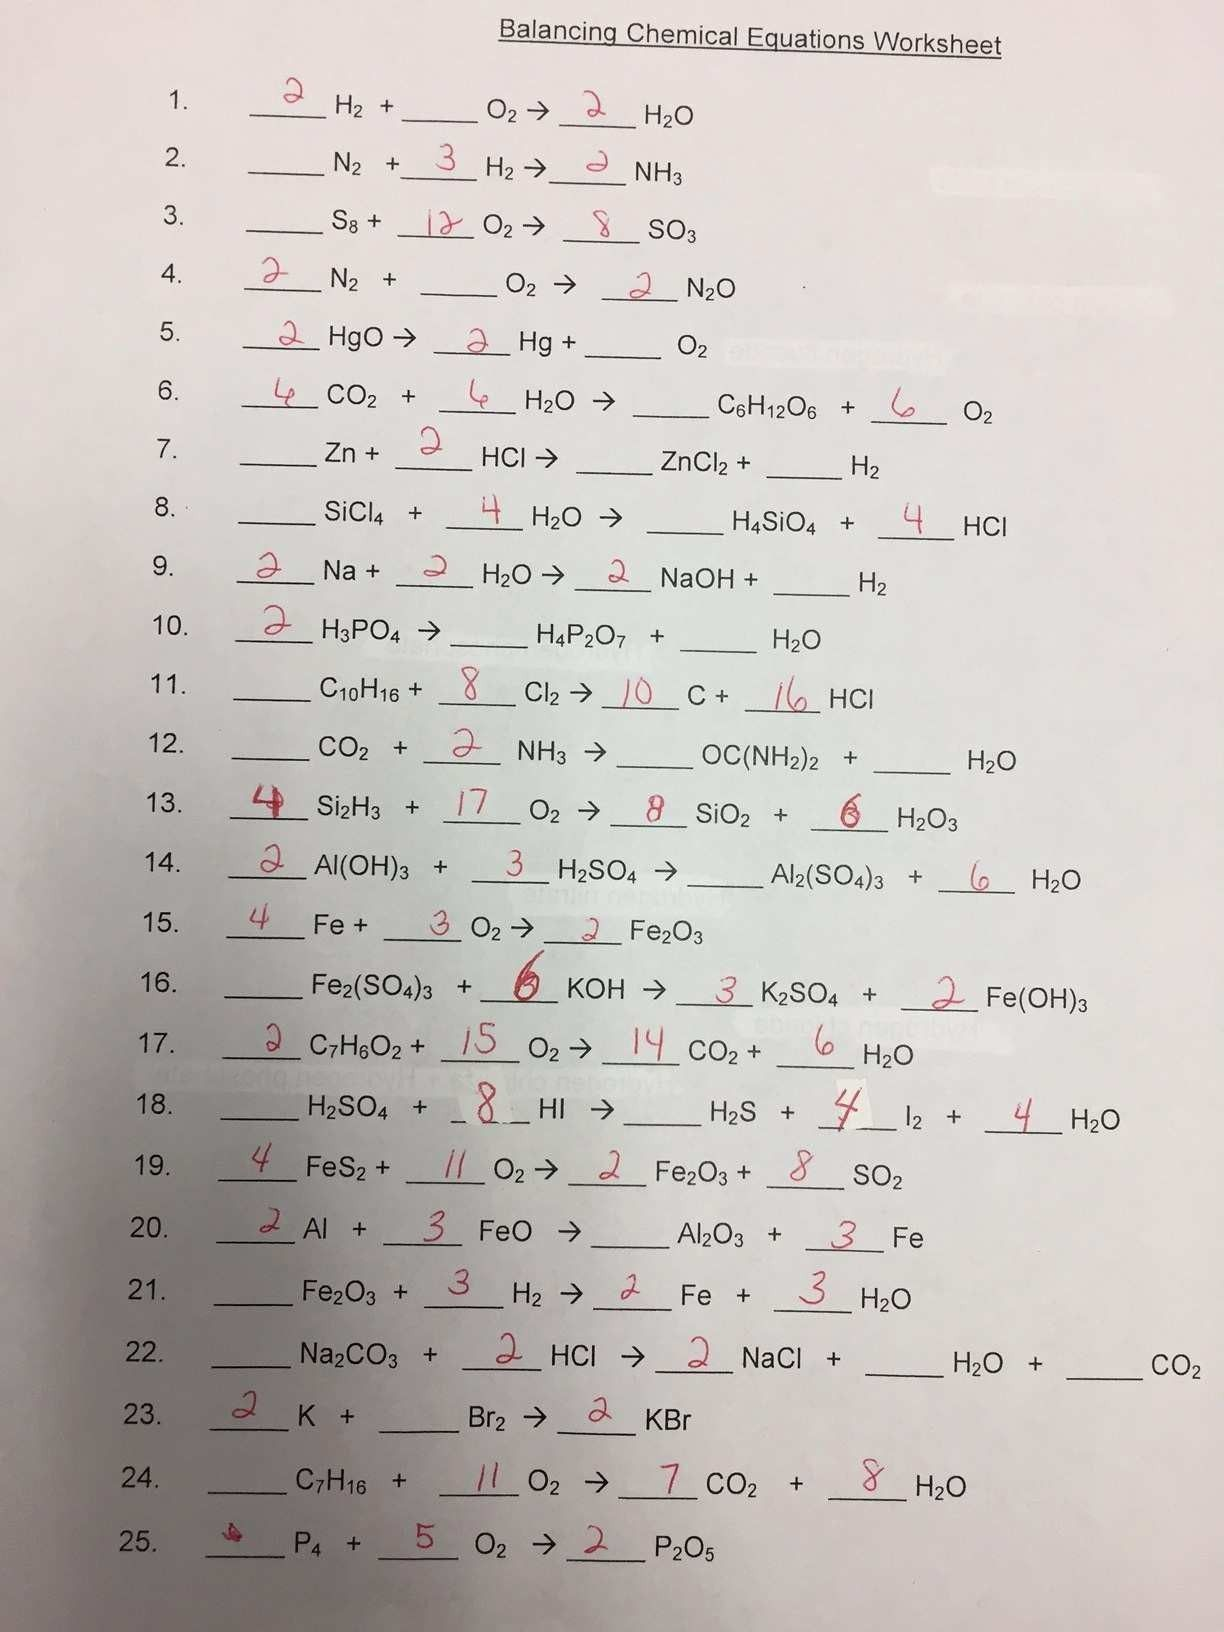 New Balancing Chemical Equations Worksheet Answers